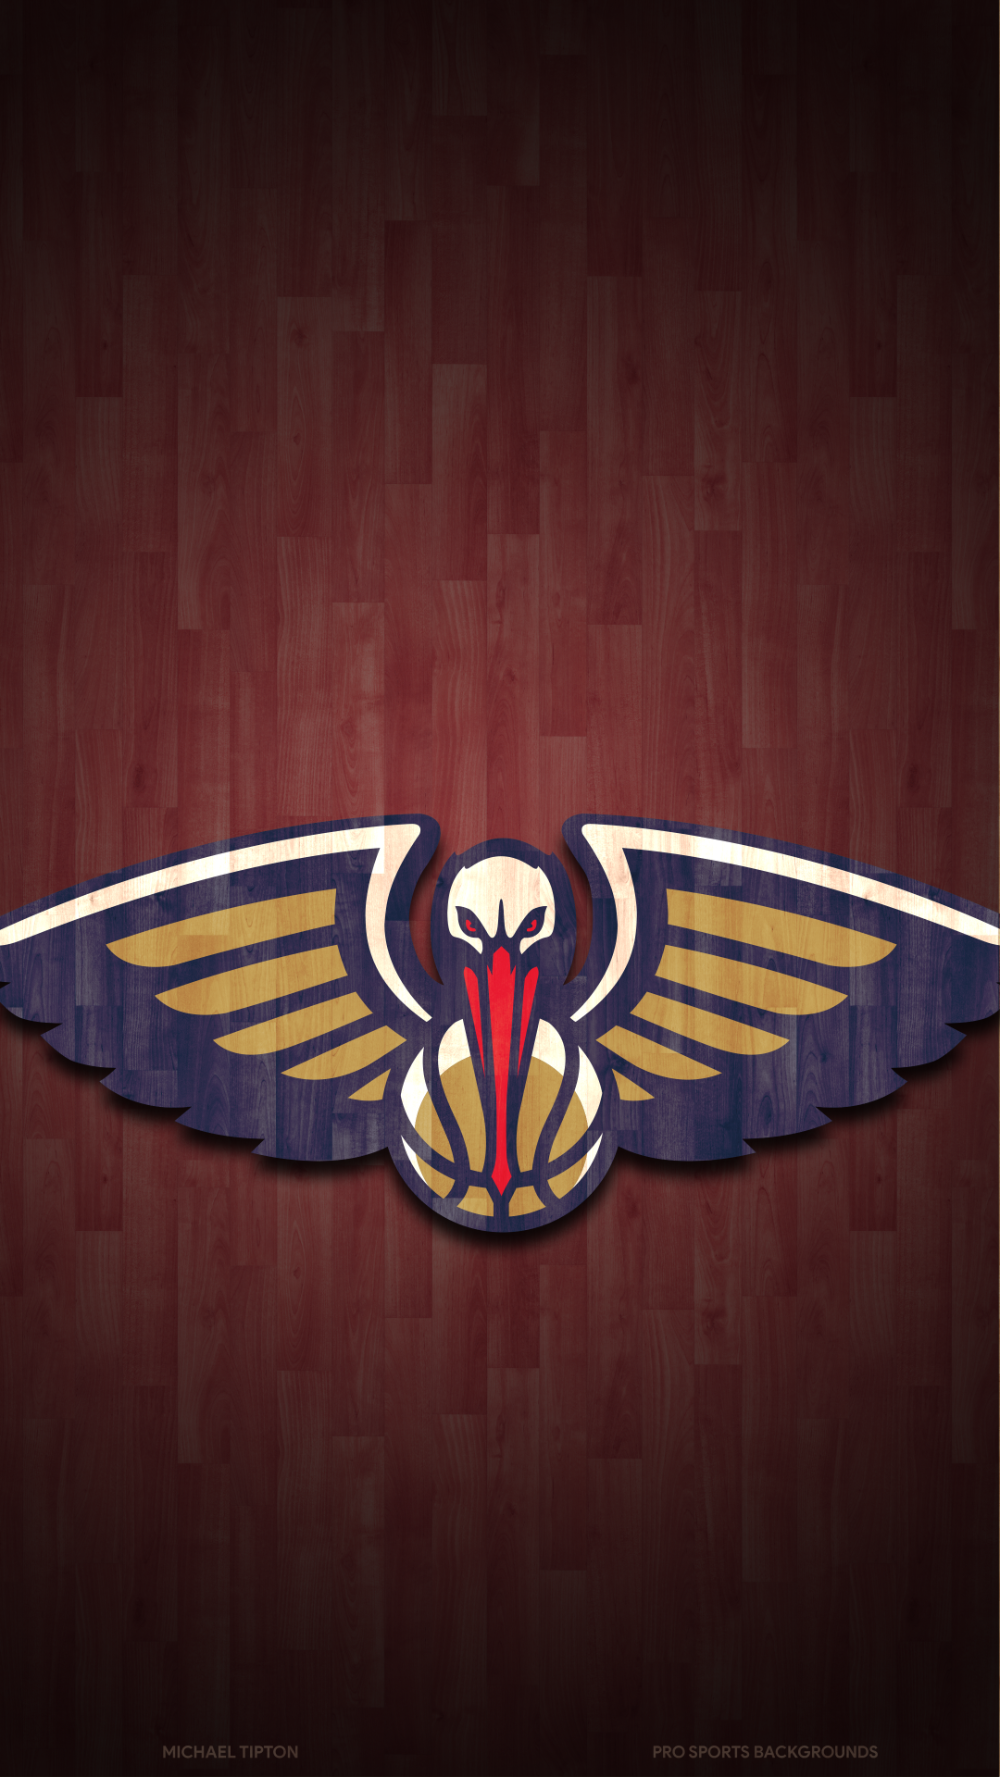 New Orleans Pelicans Wallpapers Pro Sports Backgrounds New Orleans Pelicans Nba Wallpapers New Orleans